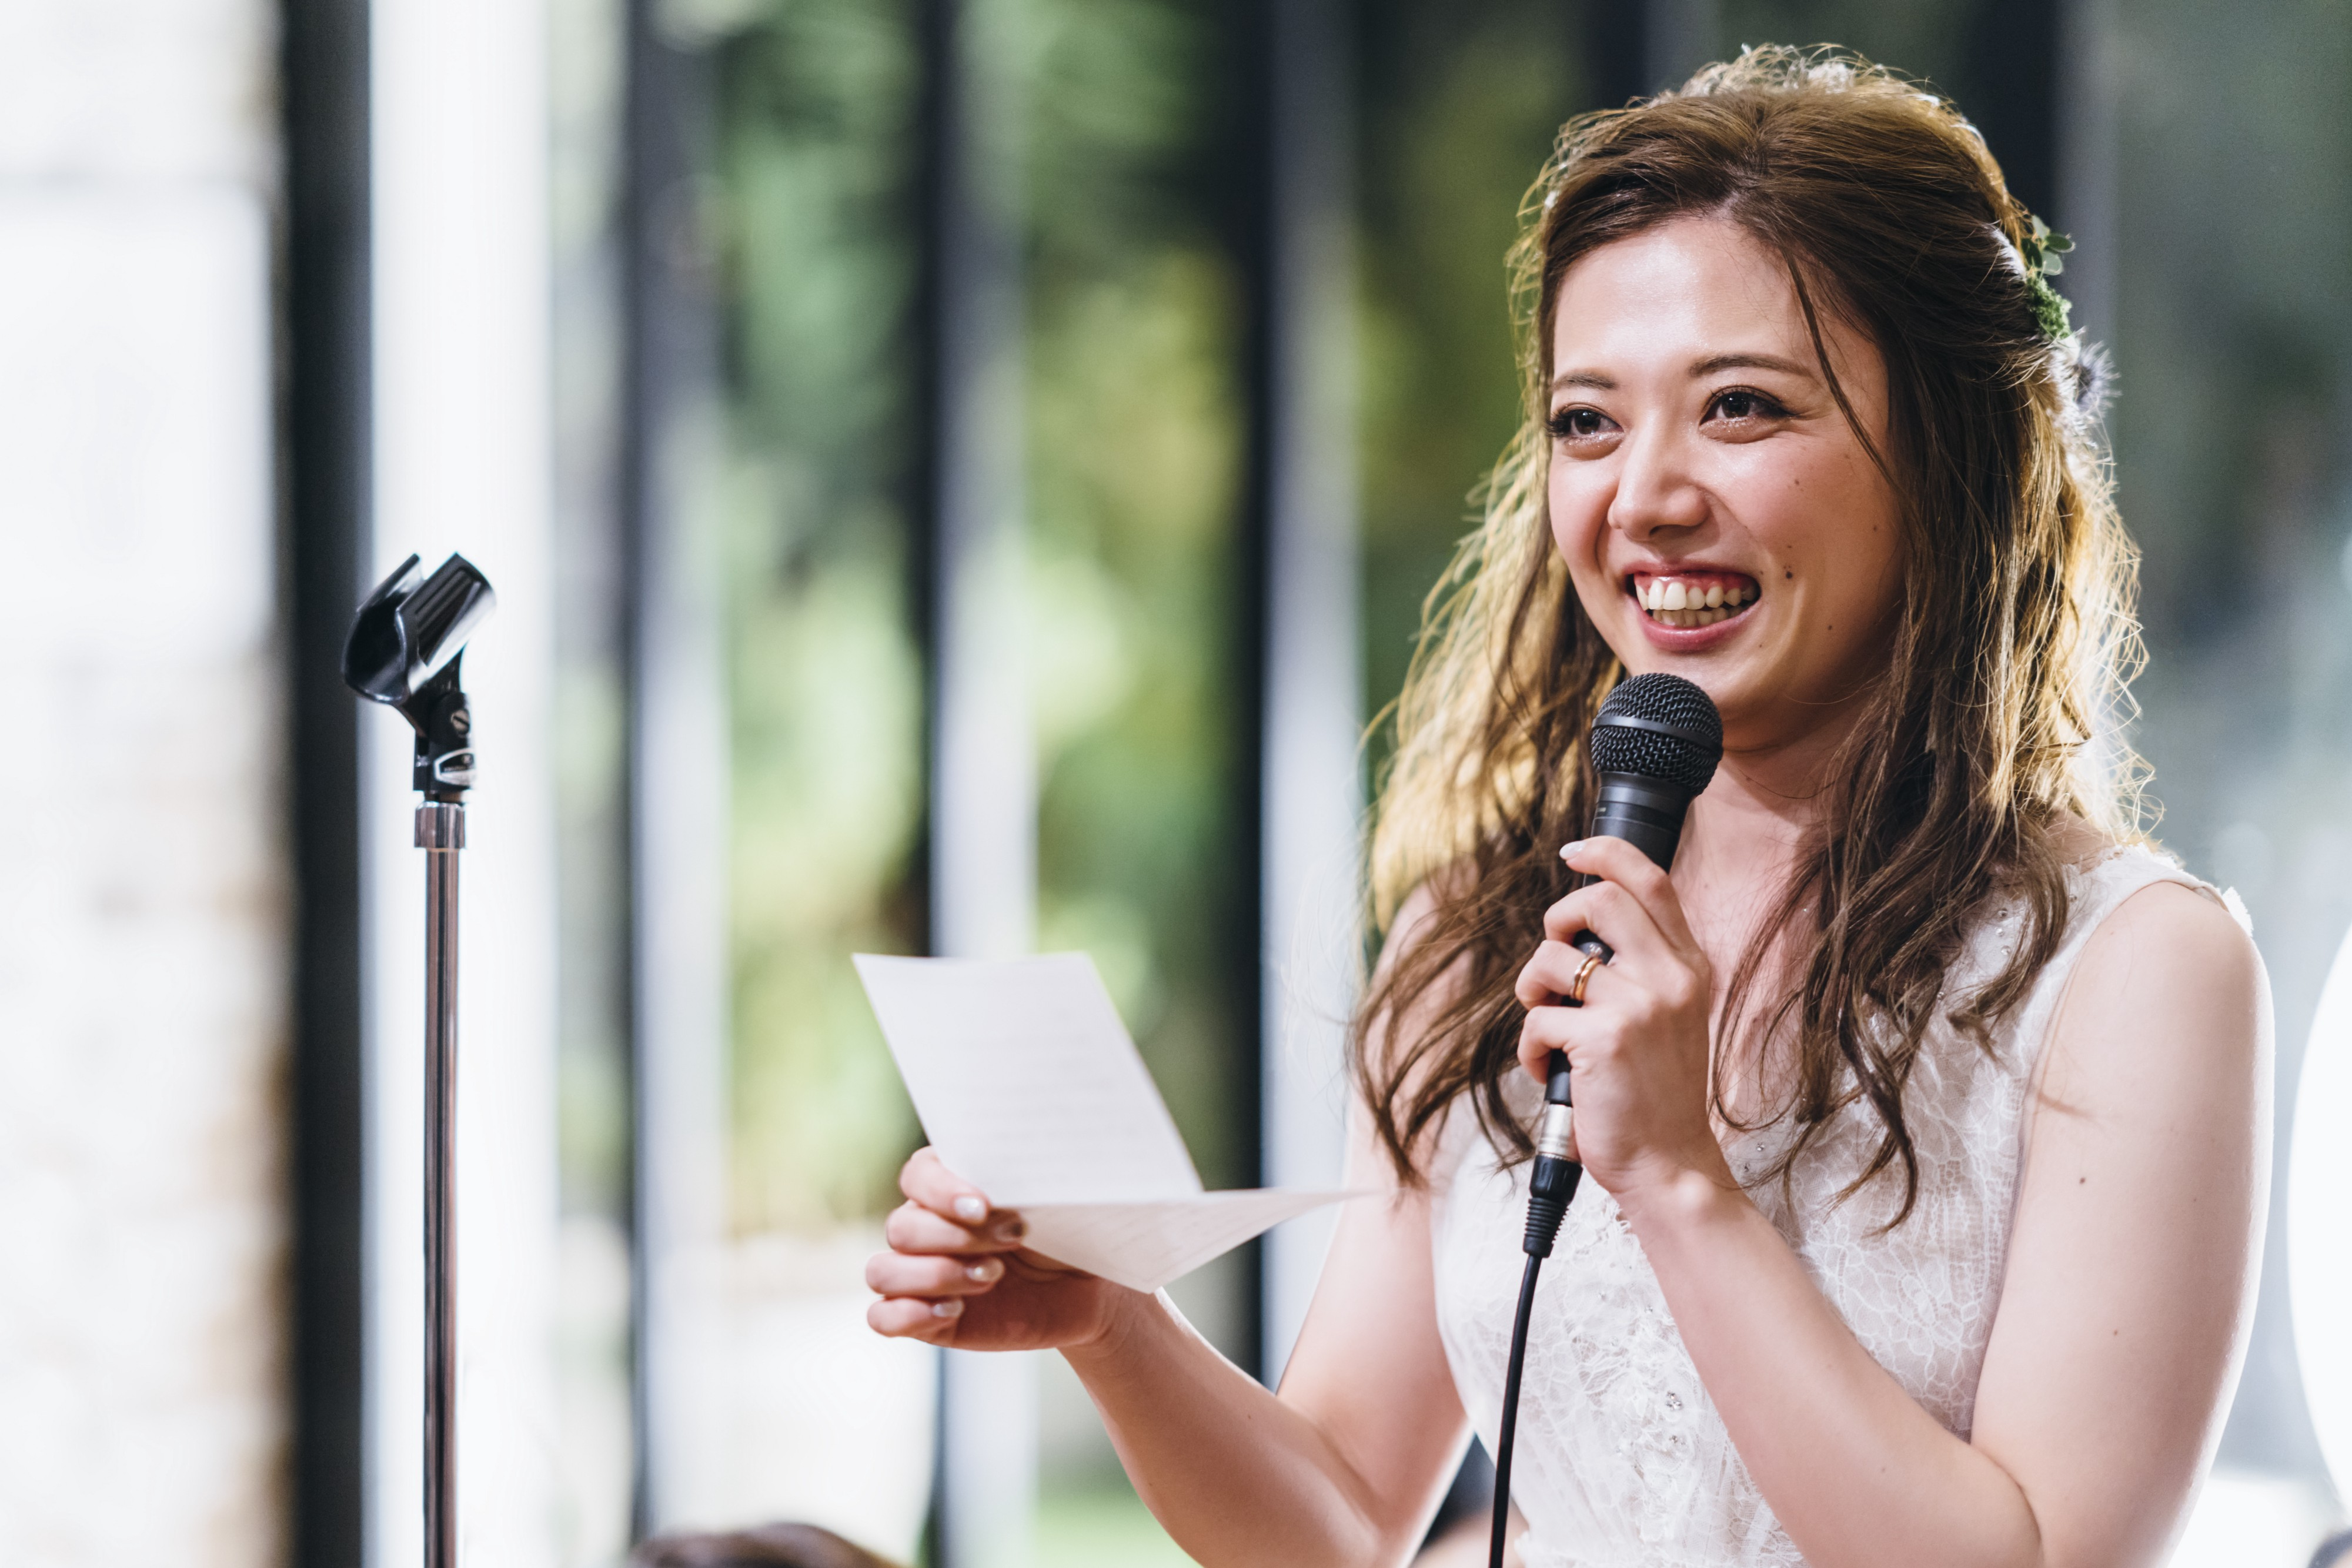 A young woman is giving speech during an event.